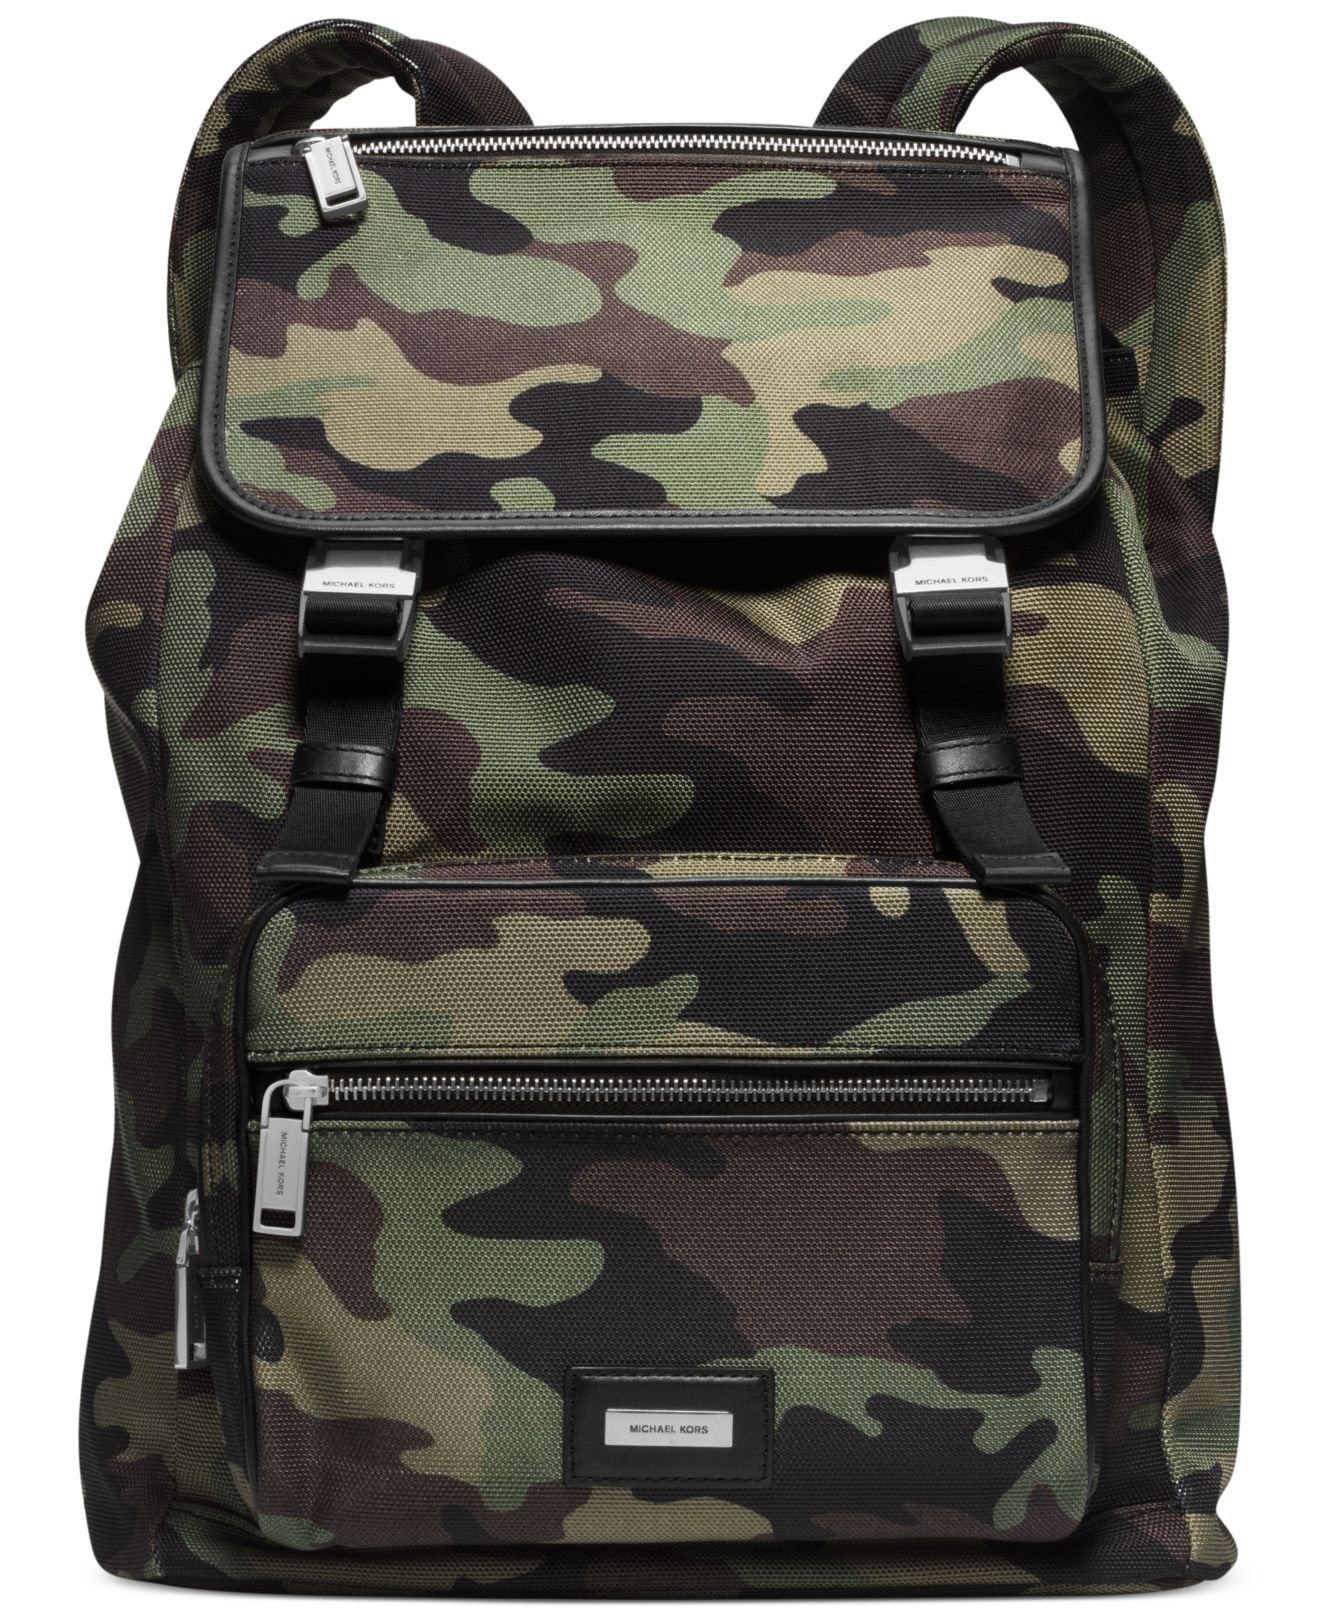 9be260c0a1a4 switzerland lyst michael kors windsor large camo backpack in green for men  90d92 93606